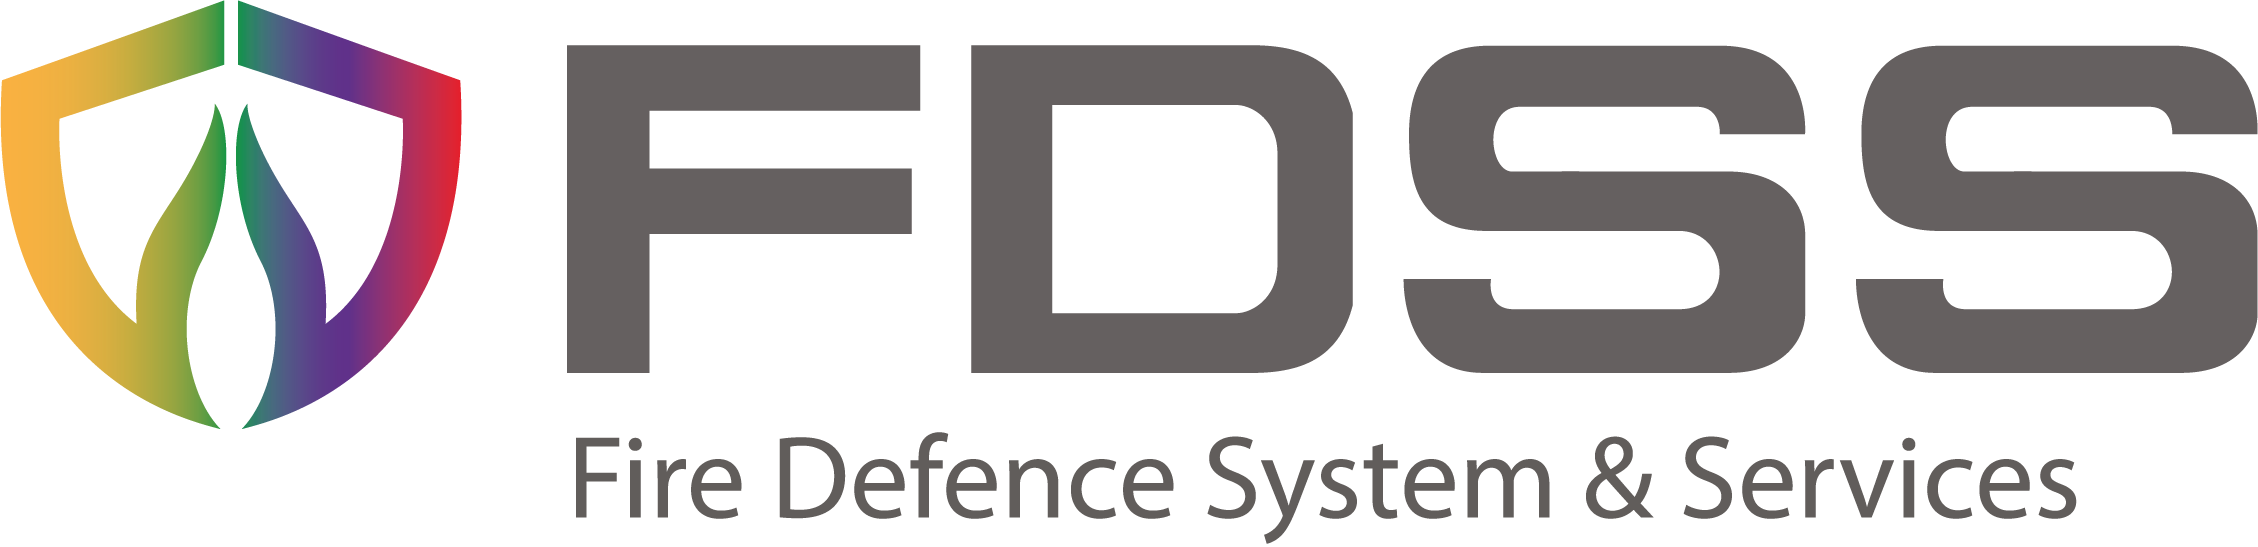 Firedefence